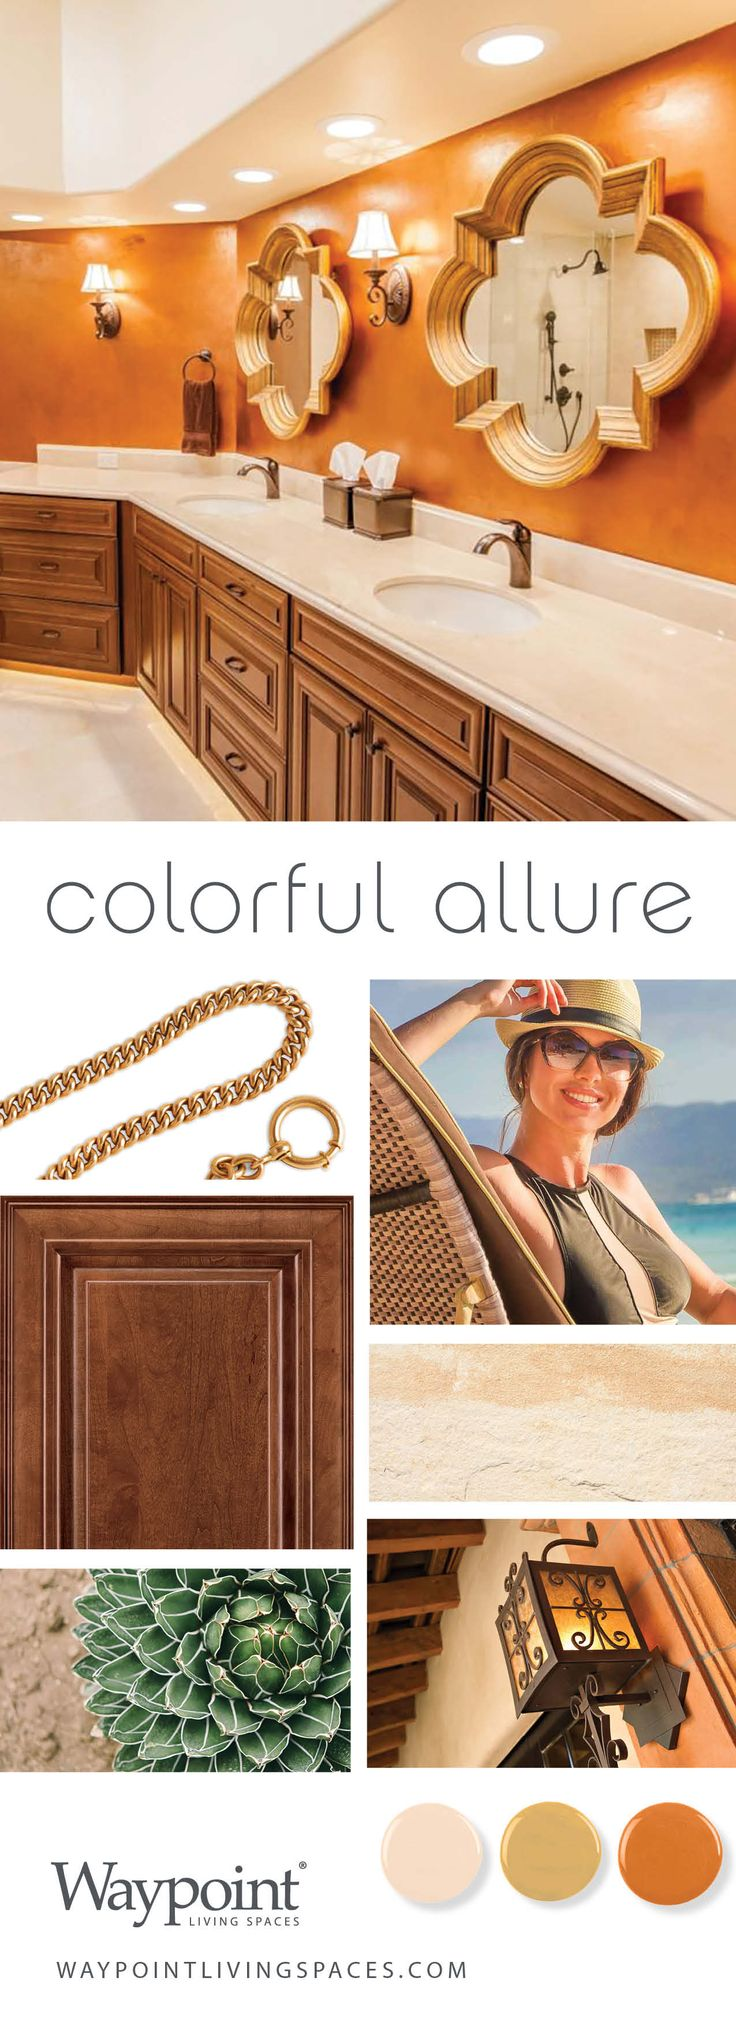 Sleek version of our Colorful Allure style by Sheila Lanier of Homework  Remodels  Bathroom cabinets281 best Colorful Allure images on Pinterest   Home  Living spaces  . Allure Kitchen And Bath Long Island. Home Design Ideas